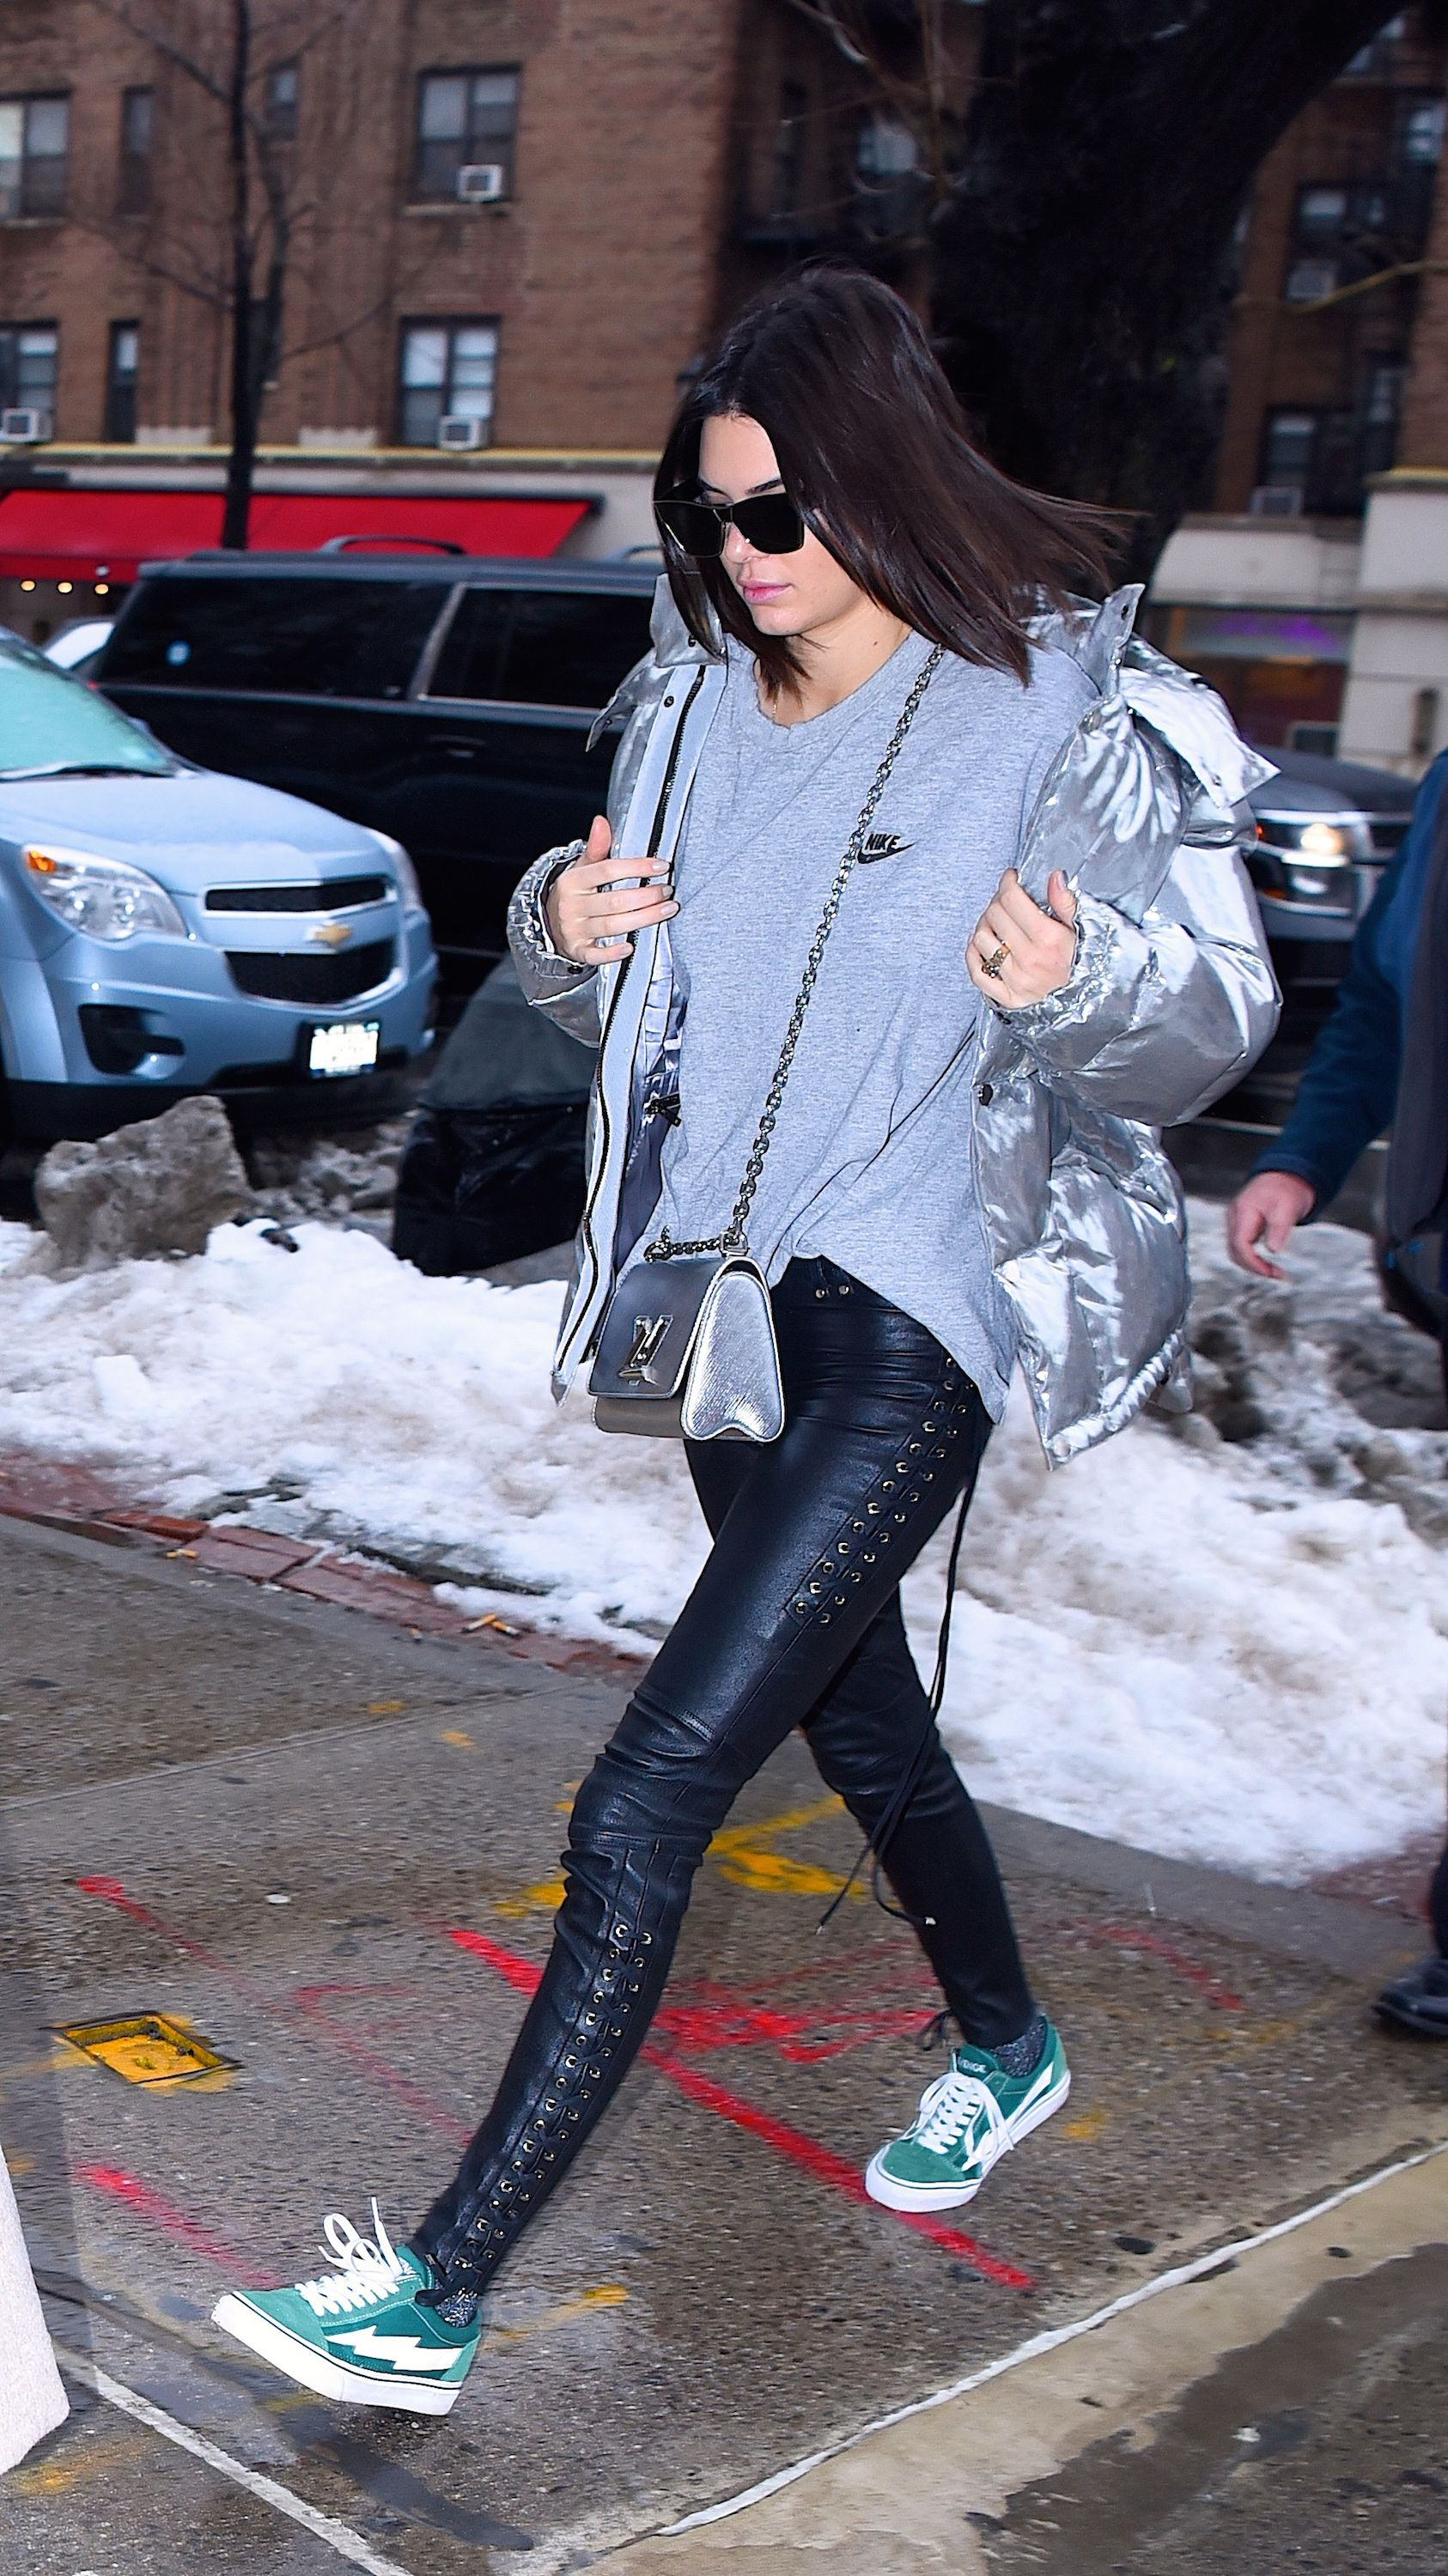 a40bea0265282 Kendall Jenner Street Style - Kendall Jenner s Best Fashion Looks